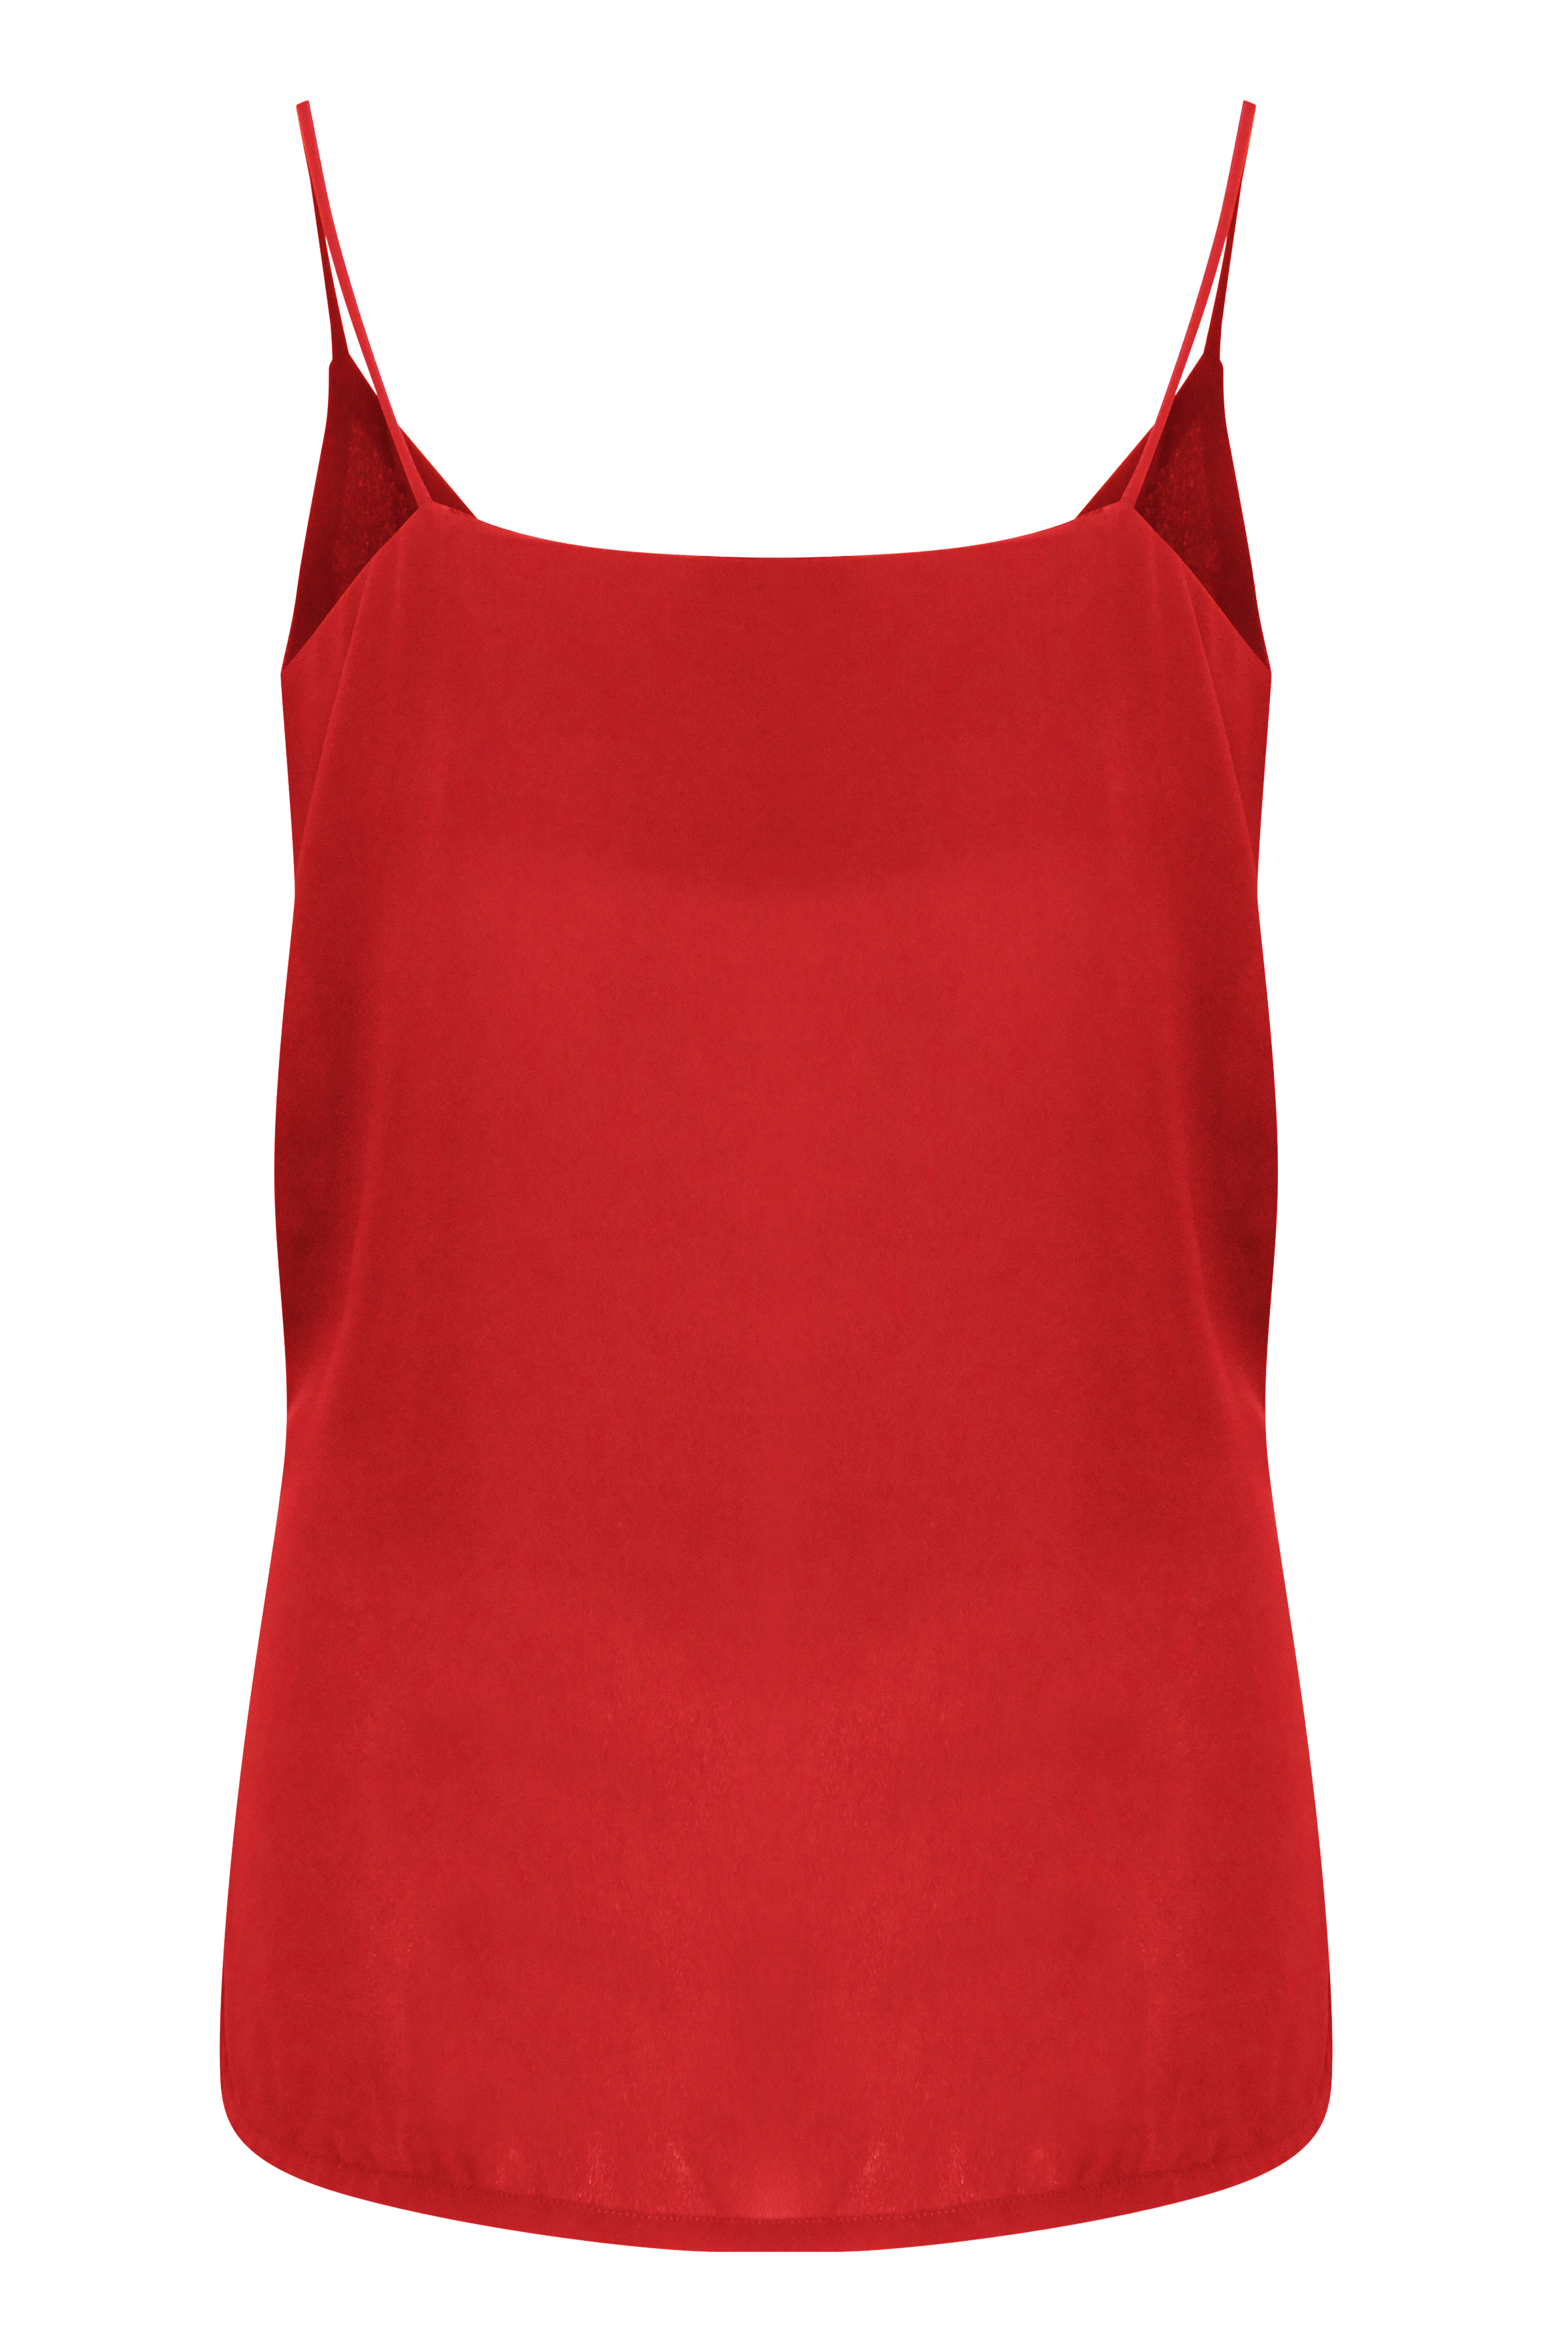 Chinese Red Top fra b.young – Køb Chinese Red Top fra str. 34-44 her